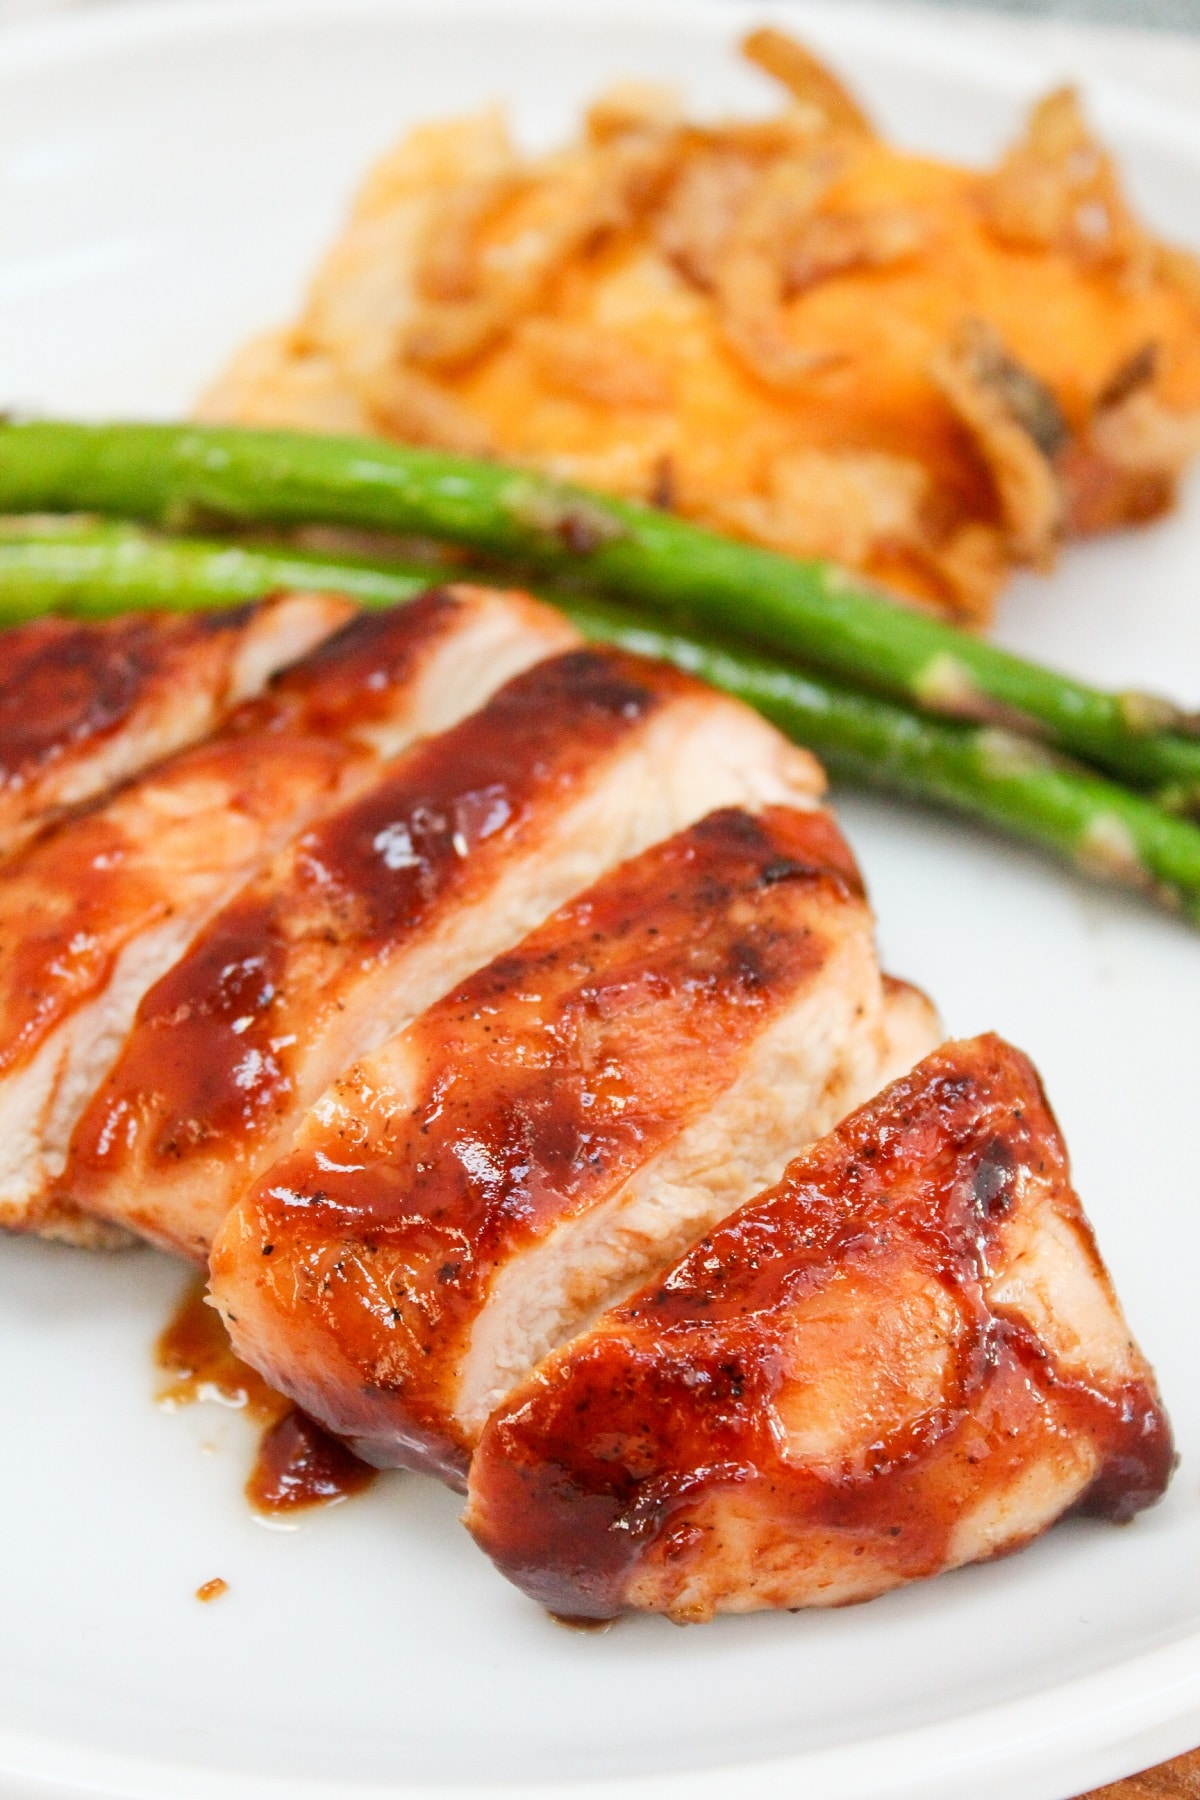 bbq chicken on a plate with asparagus